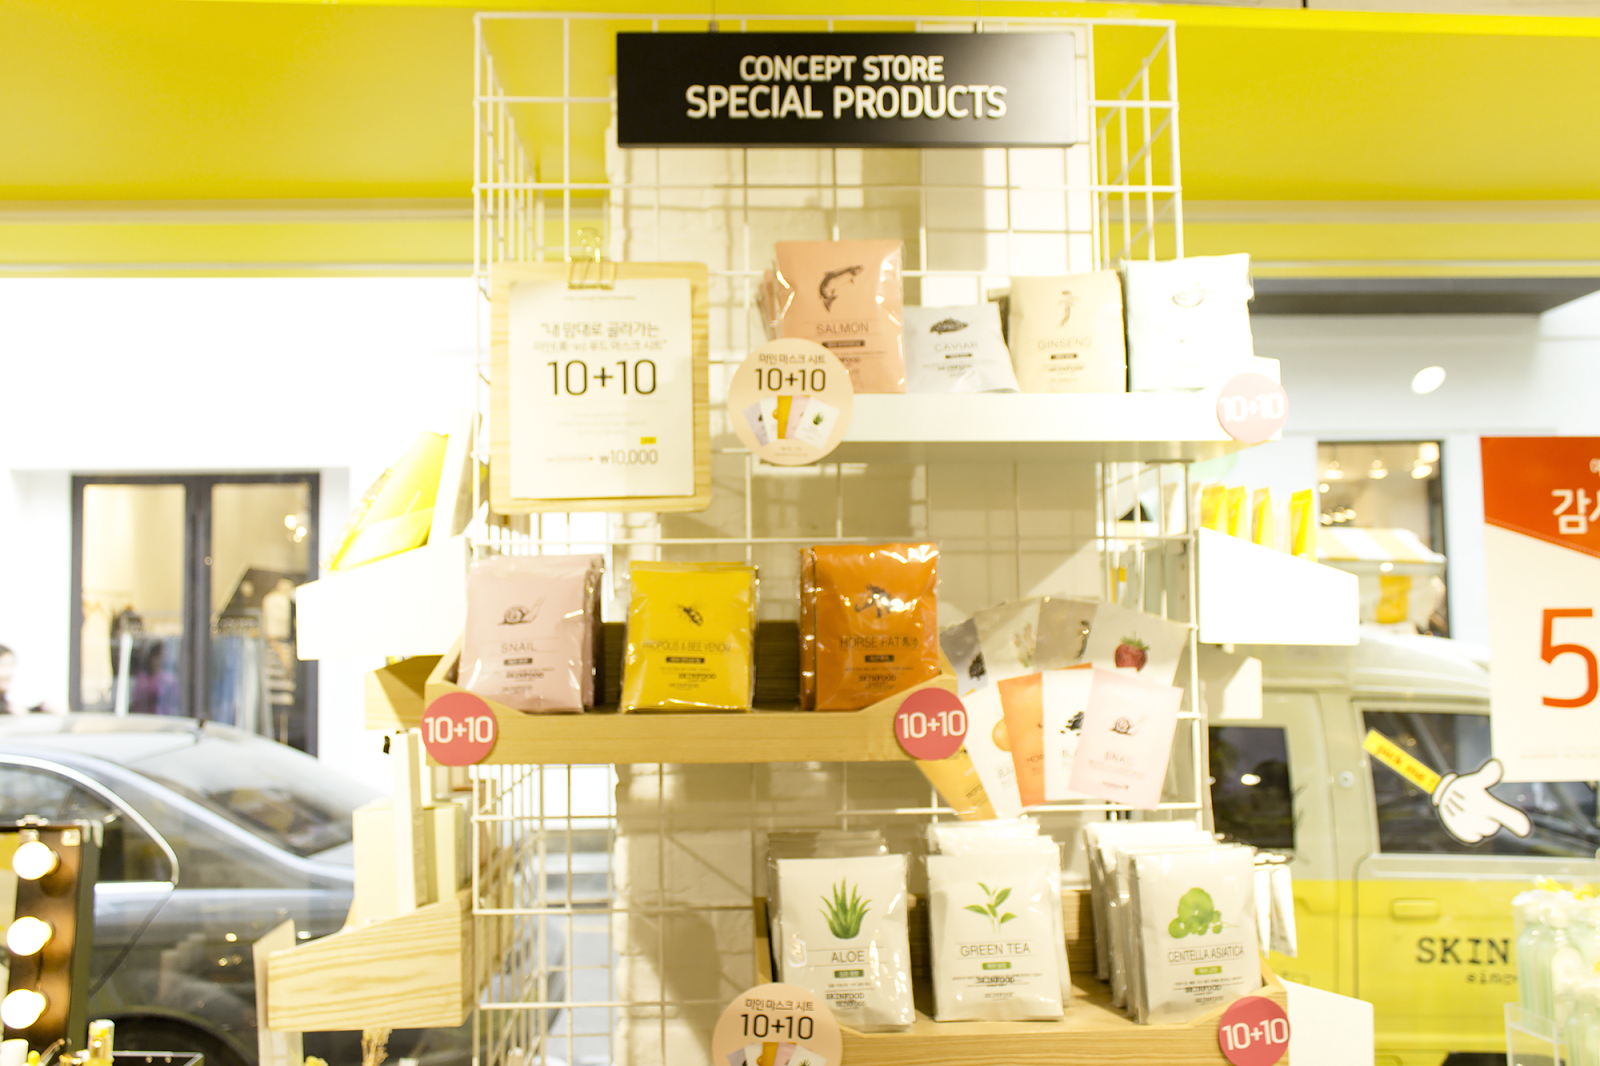 Skinfood Garosugil Concept Store special products